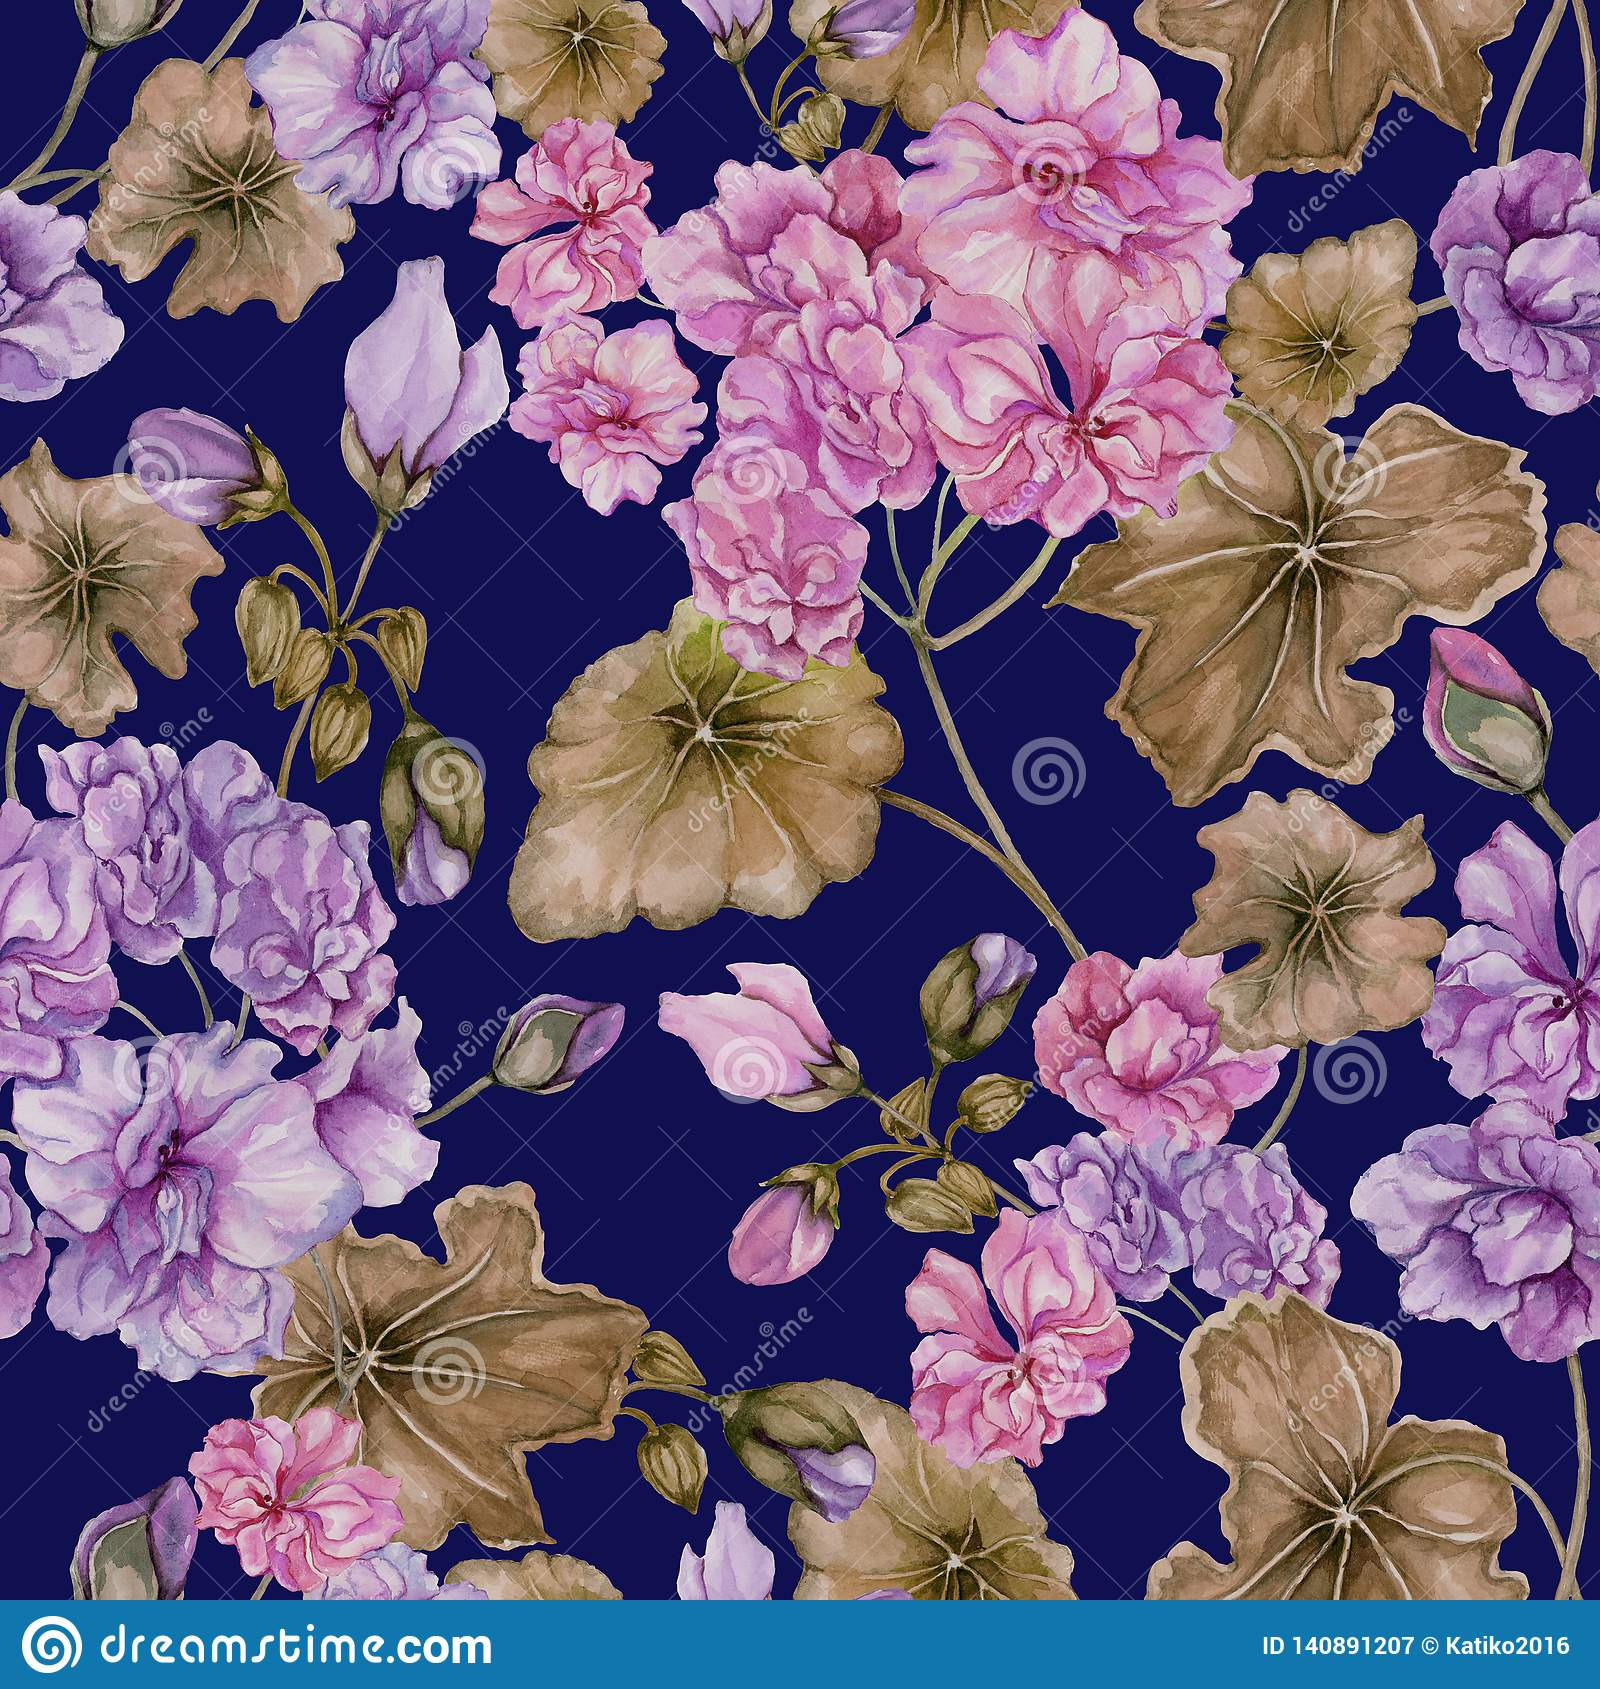 Beautiful floral background with pelargonium flowers and leaves on blue background. Seamless botanical pattern.